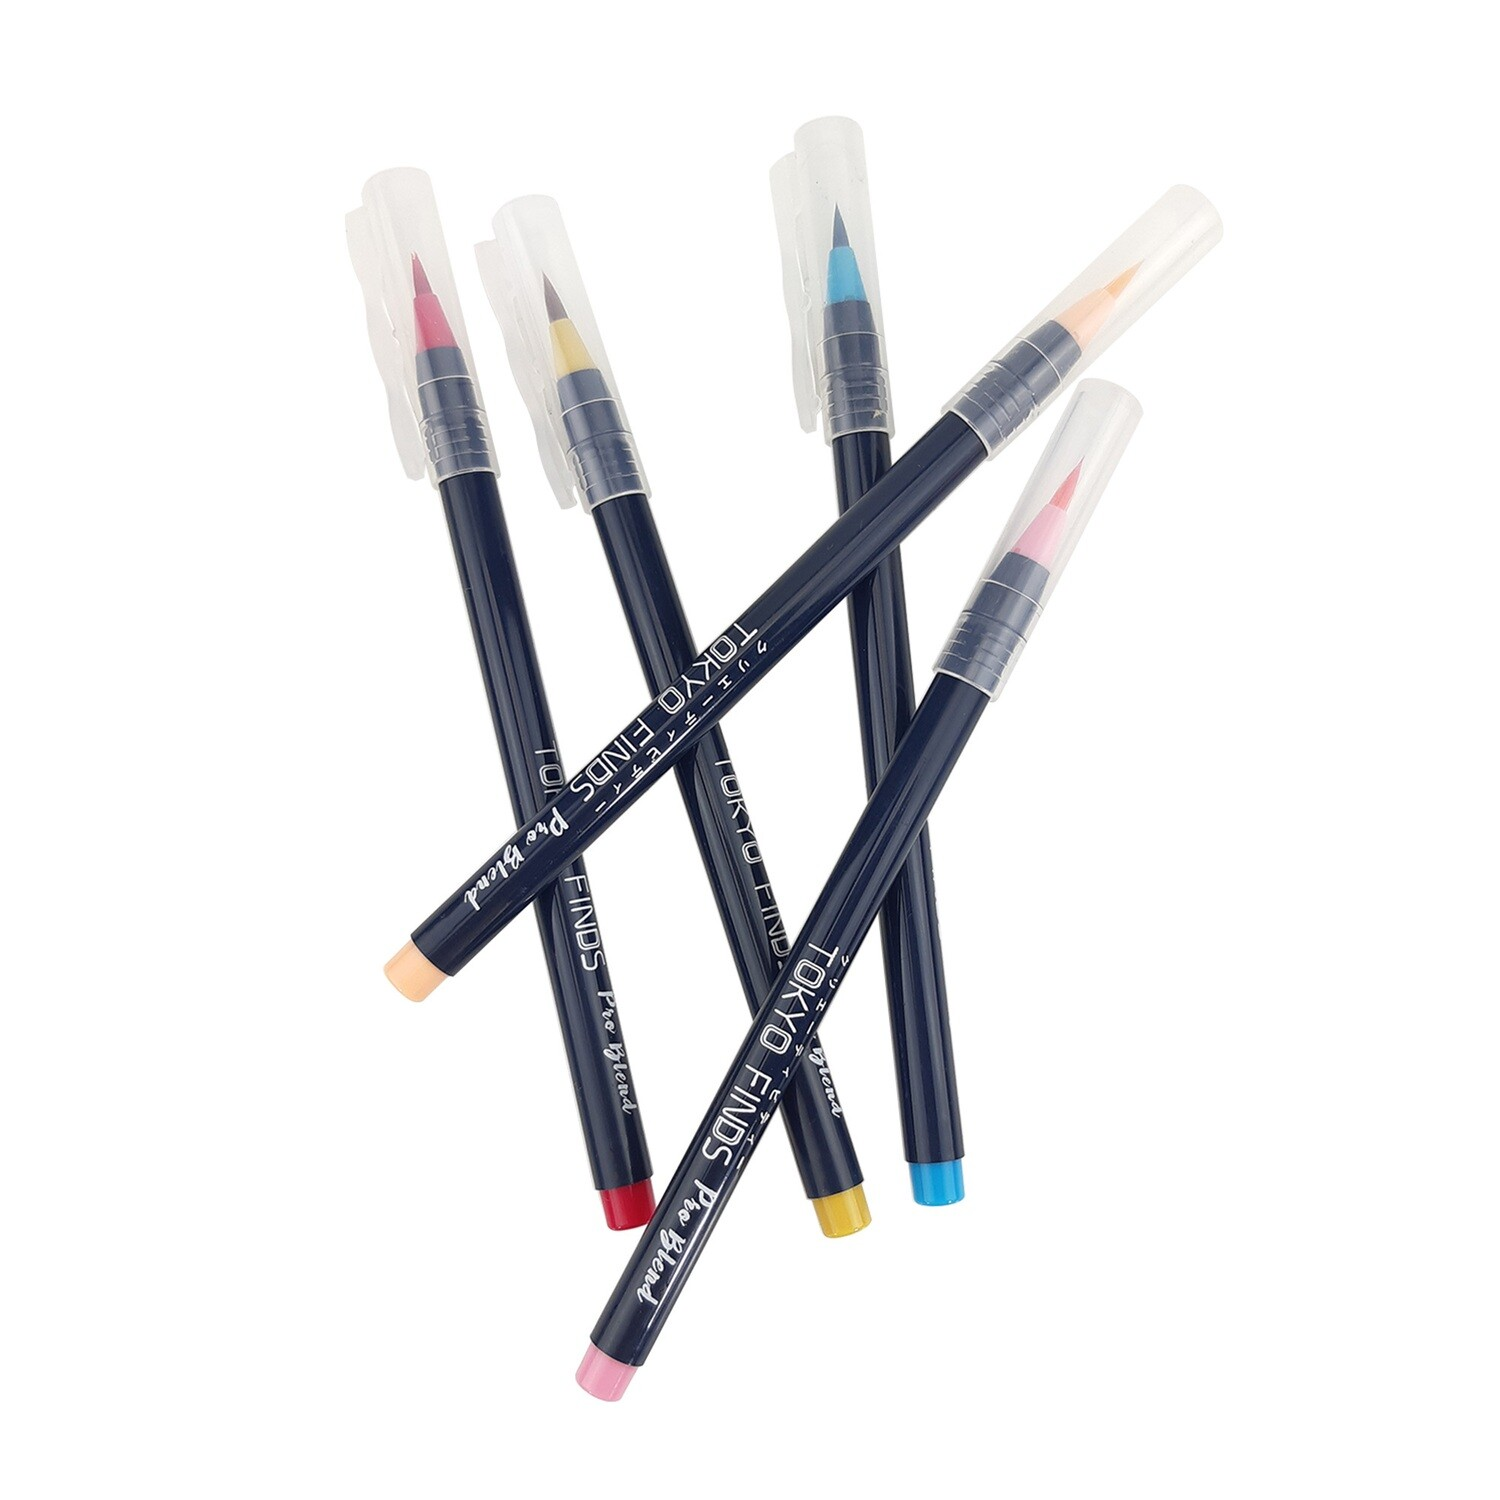 Tokyo Finds Pro Blend Calligraphy Watercolor Brush Pen - Spring Set